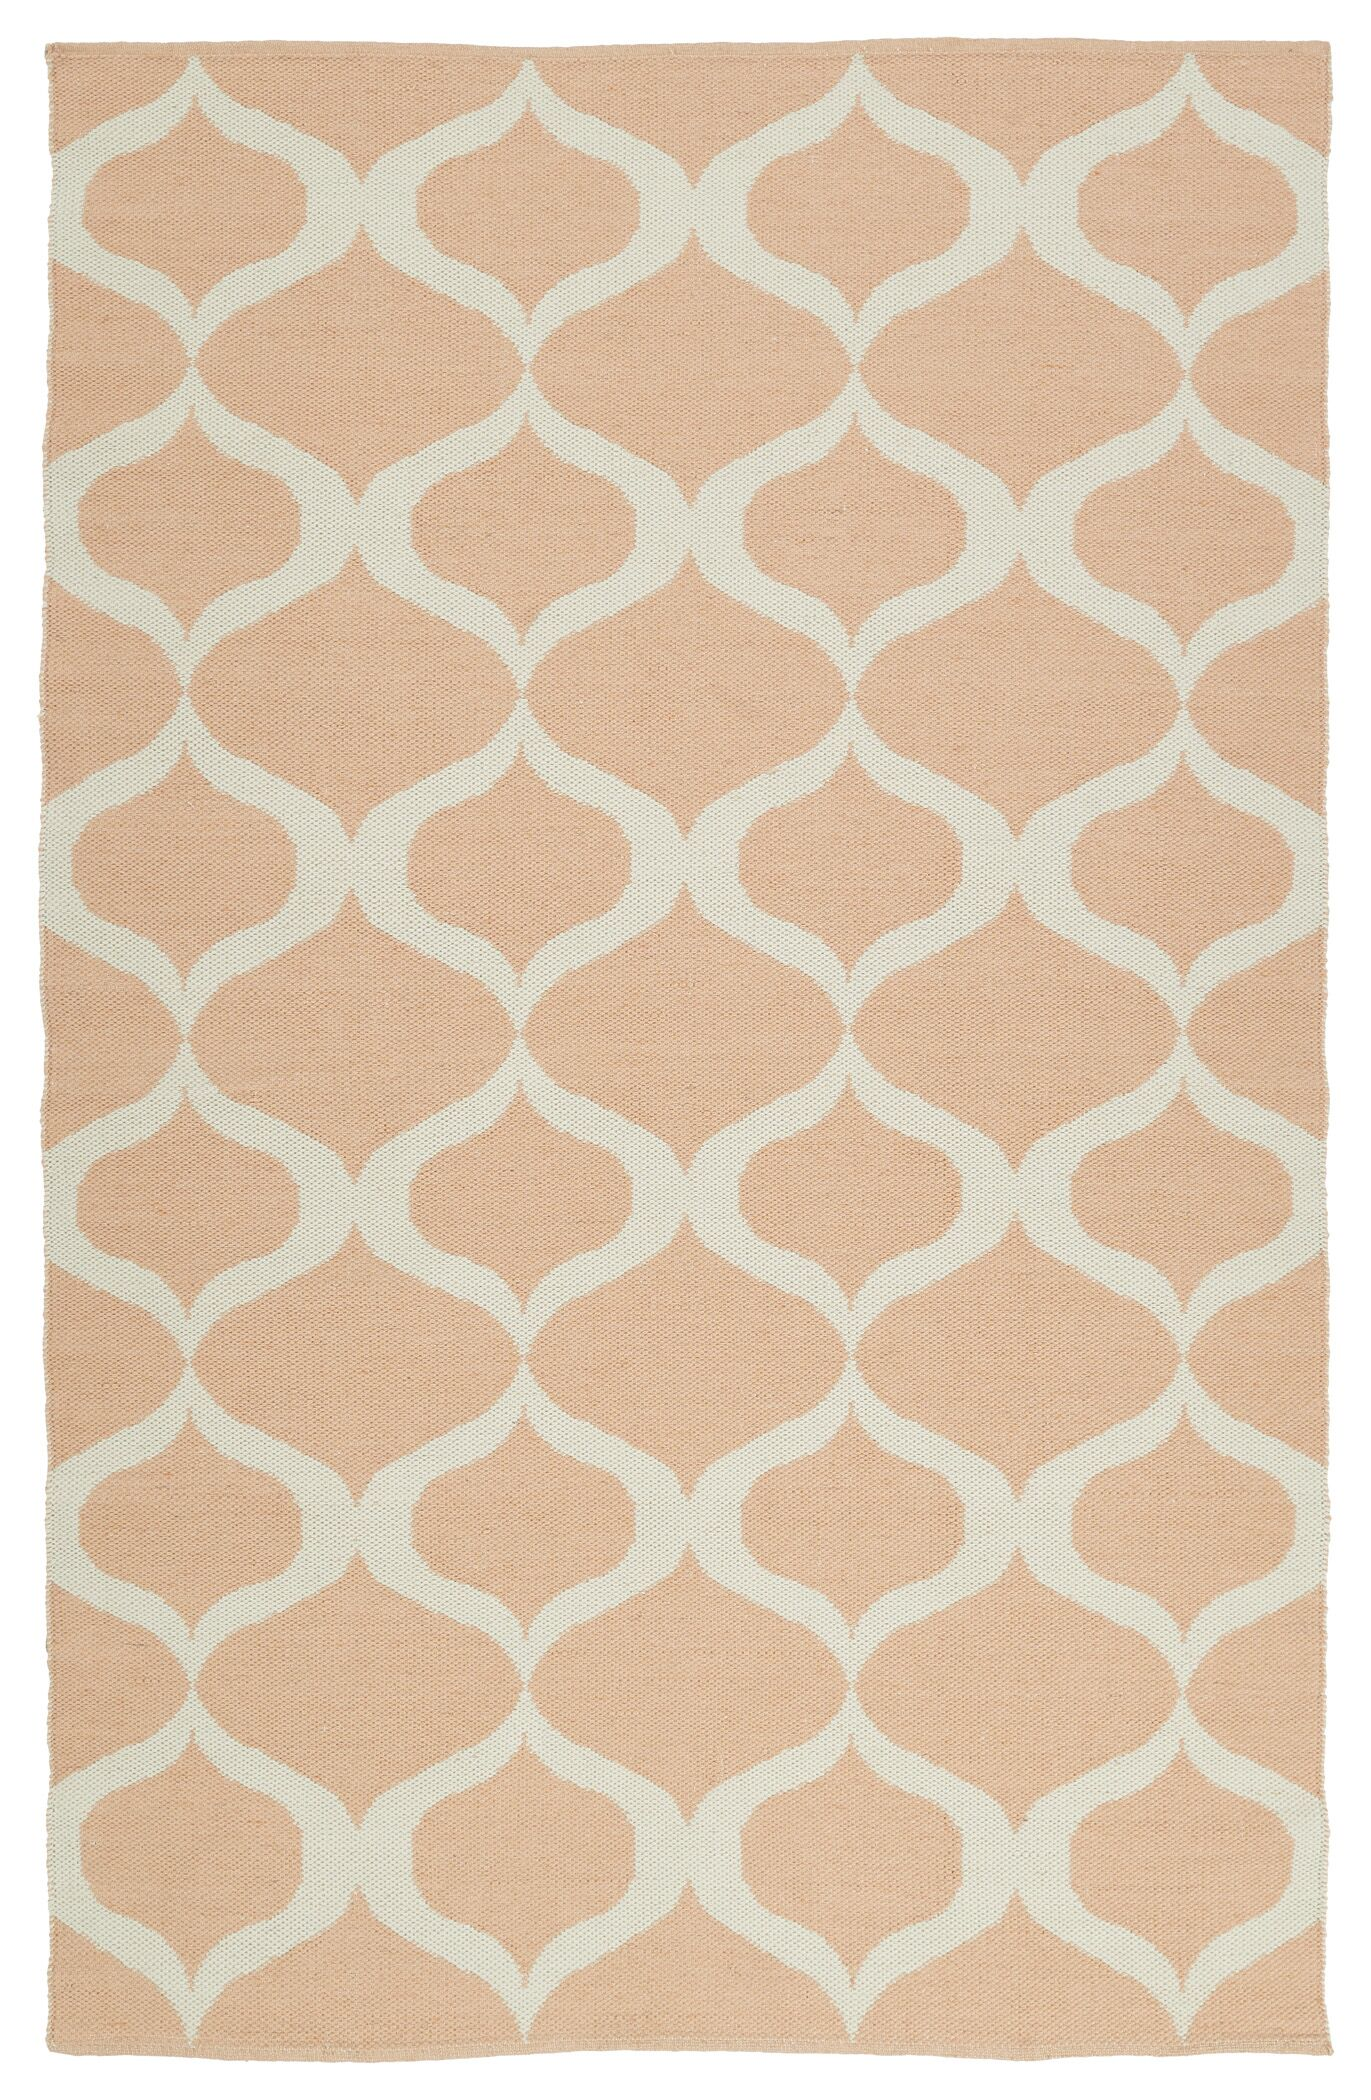 Dominic Pink/Cream Indoor/Outdoor Area Rug Rug Size: Rectangle 5' x 7'6